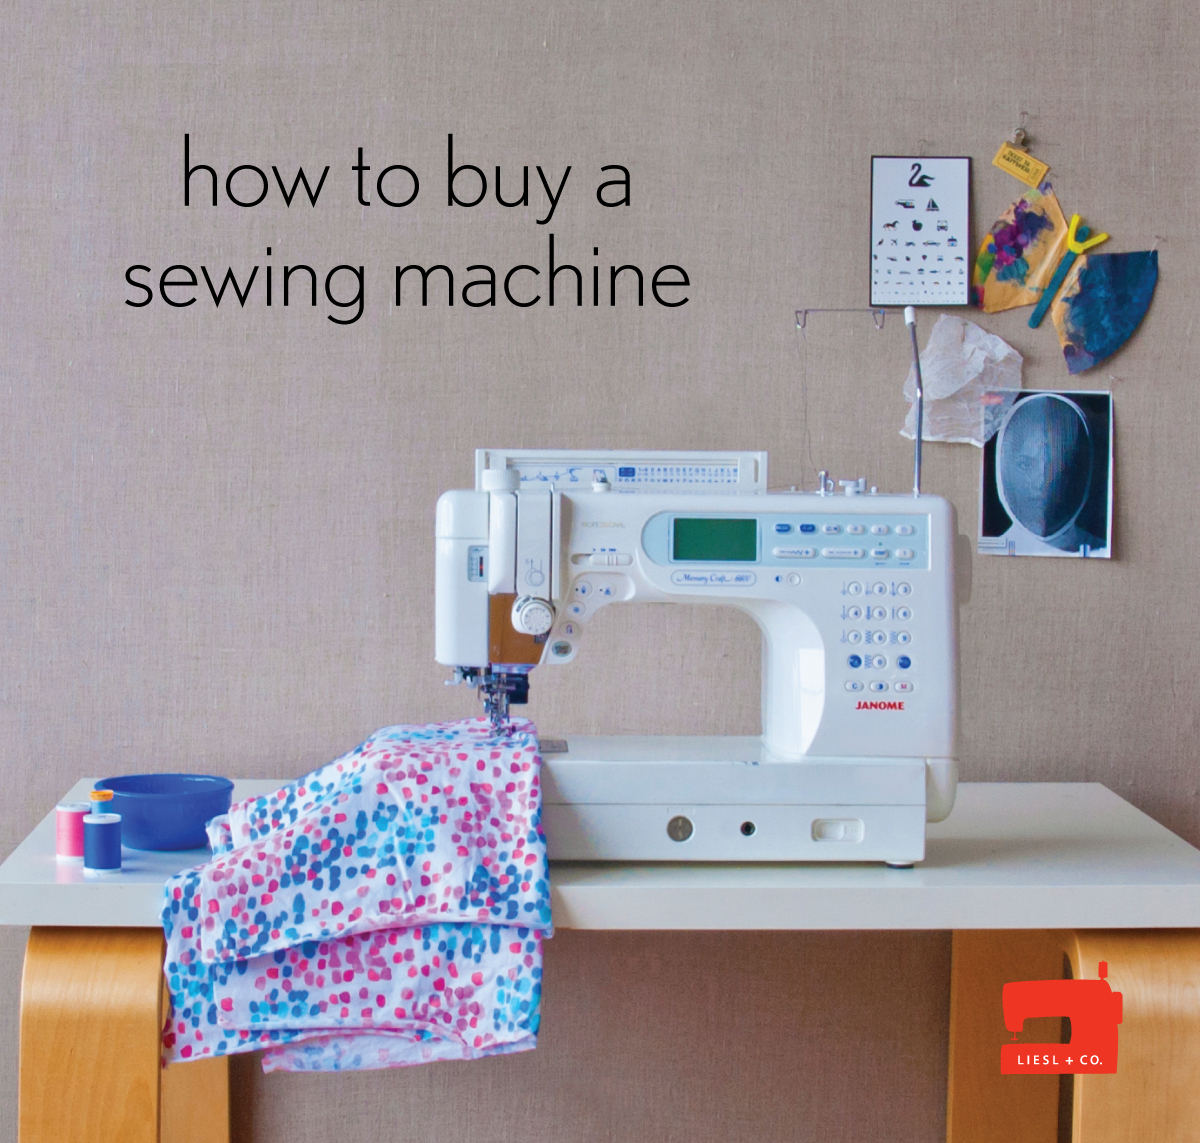 ask me: how to buy a sewing machine